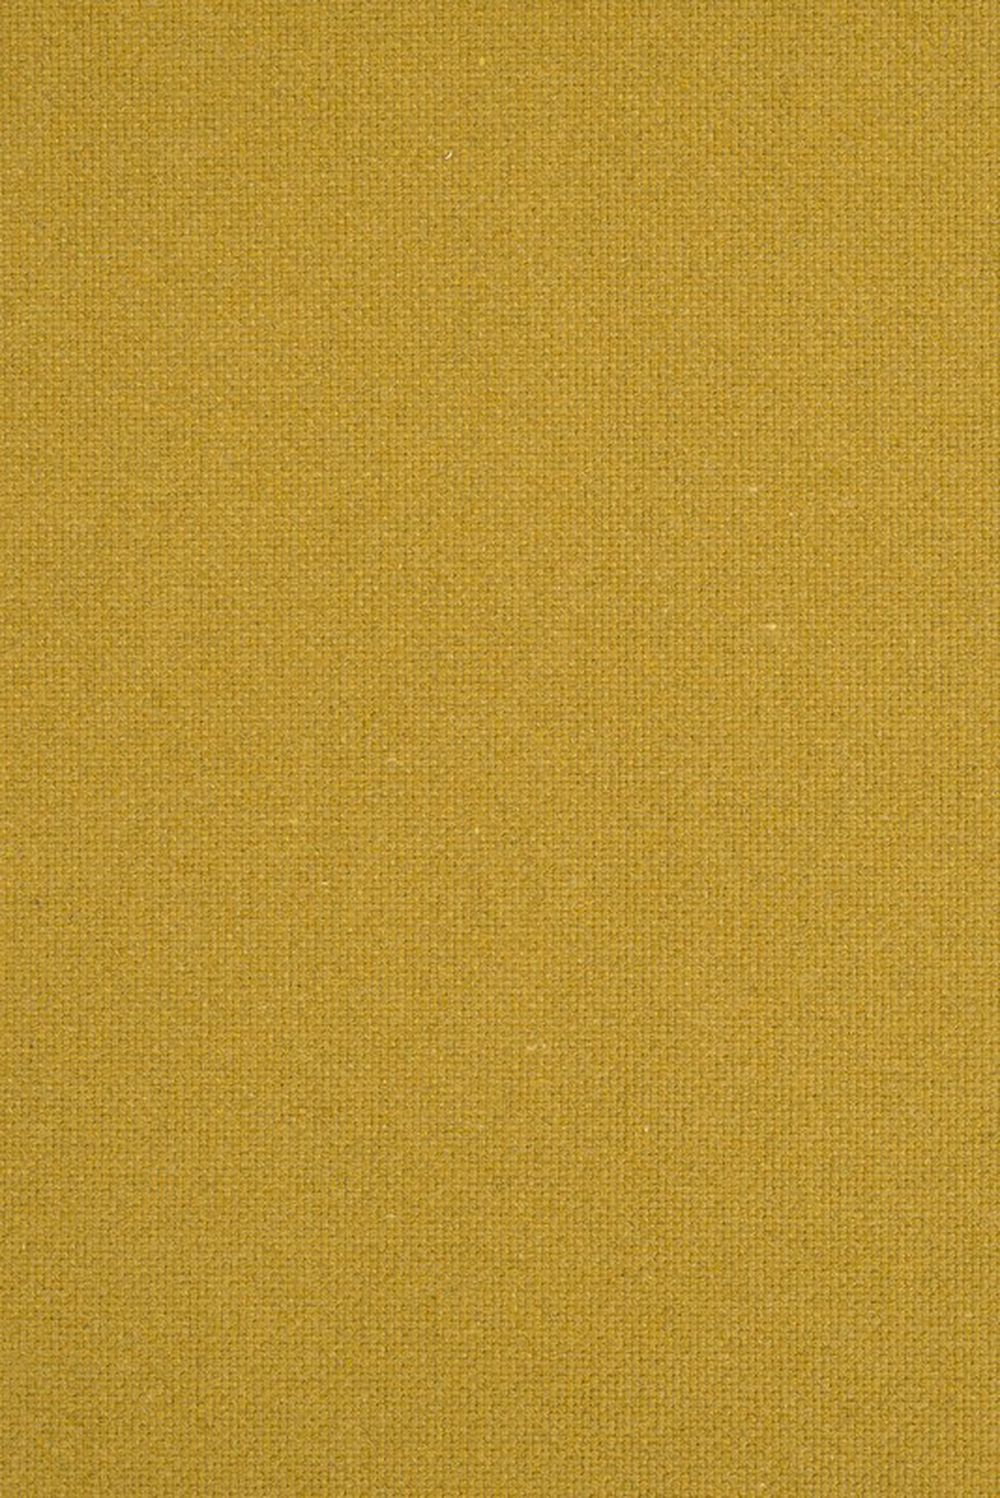 Photo of the fabric Como Oxide swatch by Mokum. Use for Upholstery Heavy Duty, Accessory. Style of Plain, Texture